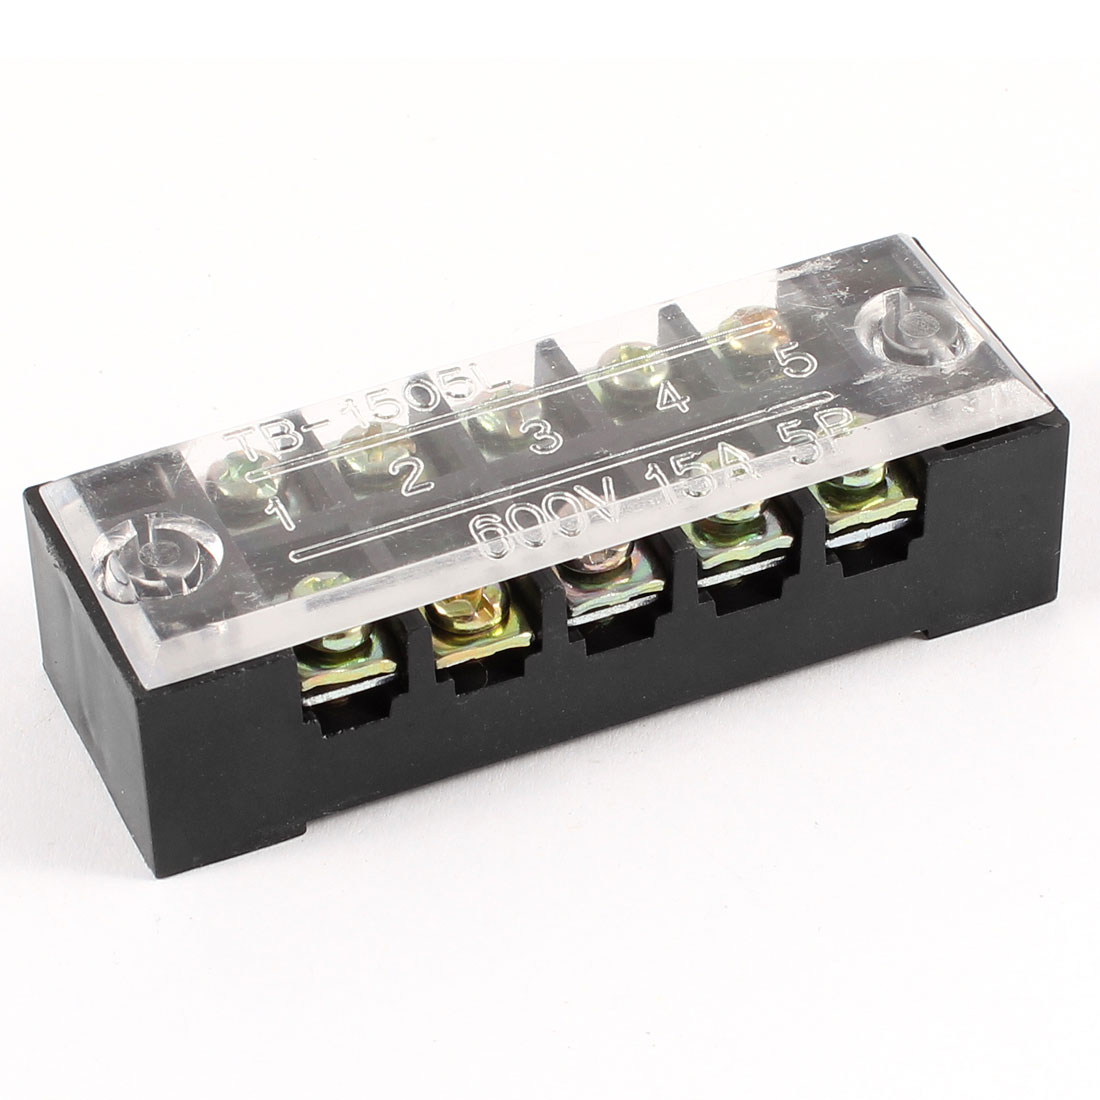 600V 15A Dual Rows 5P 5 Positions Covered Barrier Screw Terminal Block